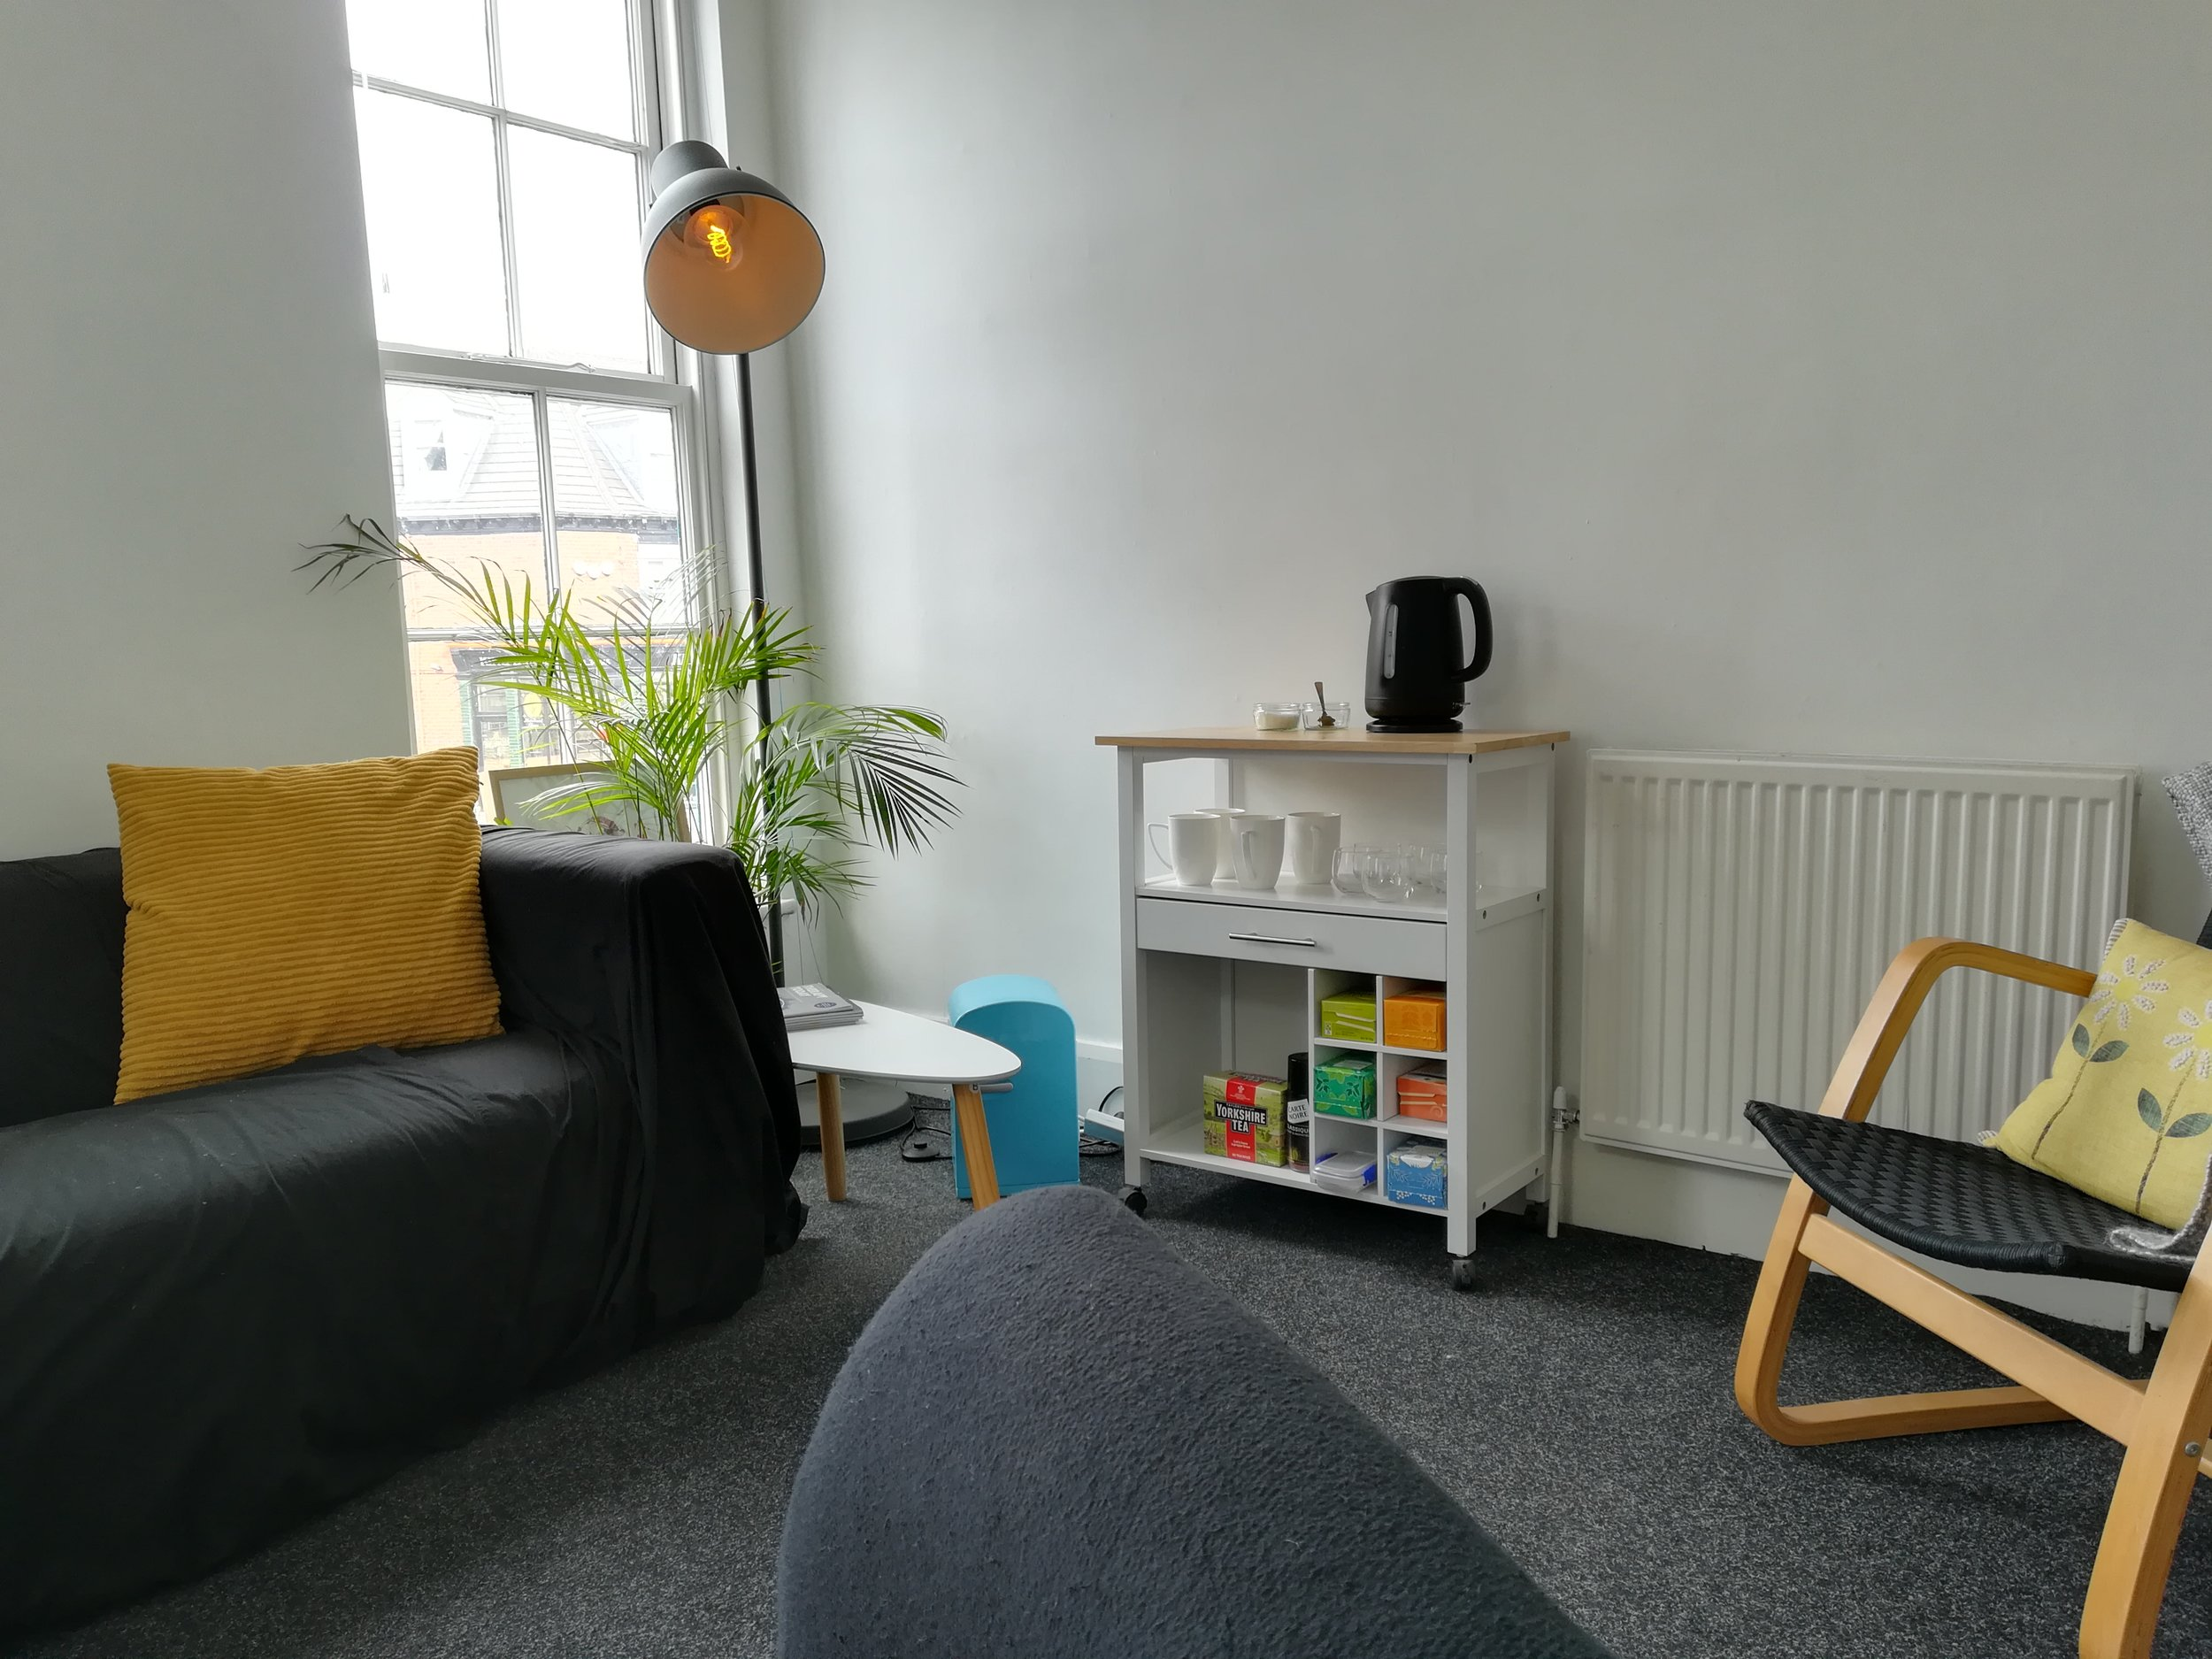 Therapy space to let, central Hull